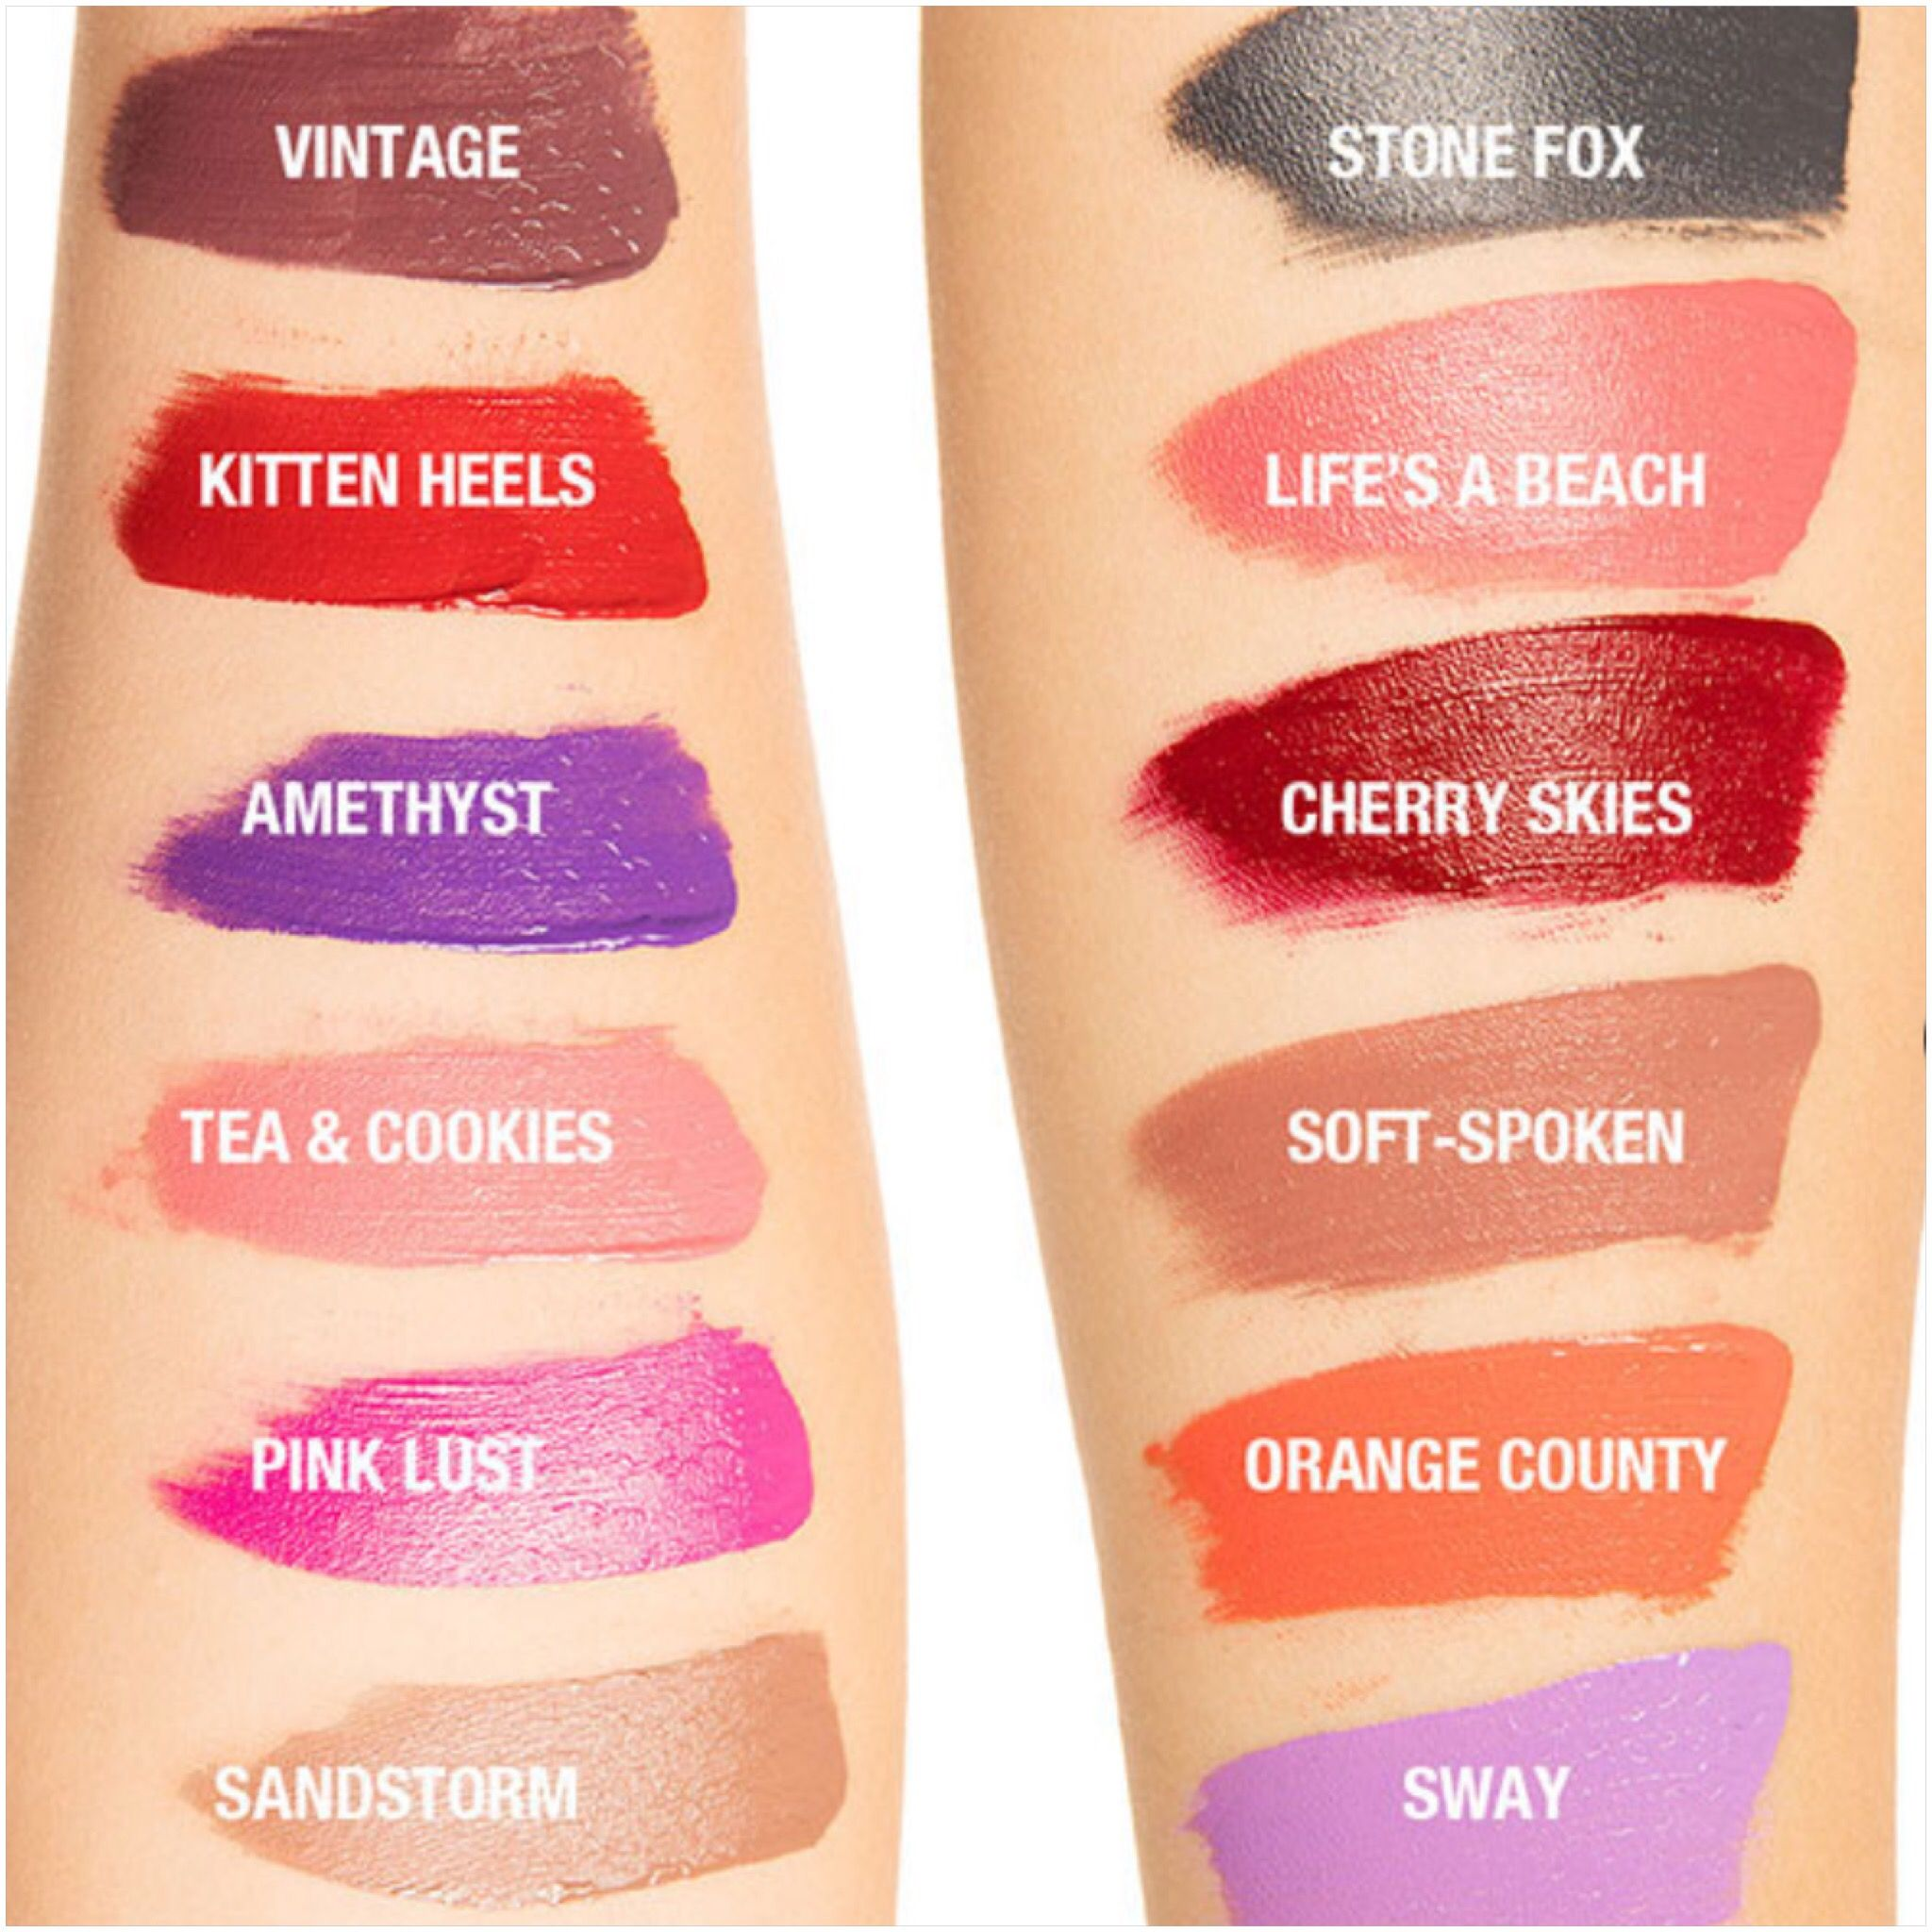 6 99 Each Target Nyx Liquid Suede Swatches On Pale Skin Want Vintage Tea Cookies Nyx Liquid Suede Swatches Liquid Suede Cream Lipstick Nyx Liquid Suede